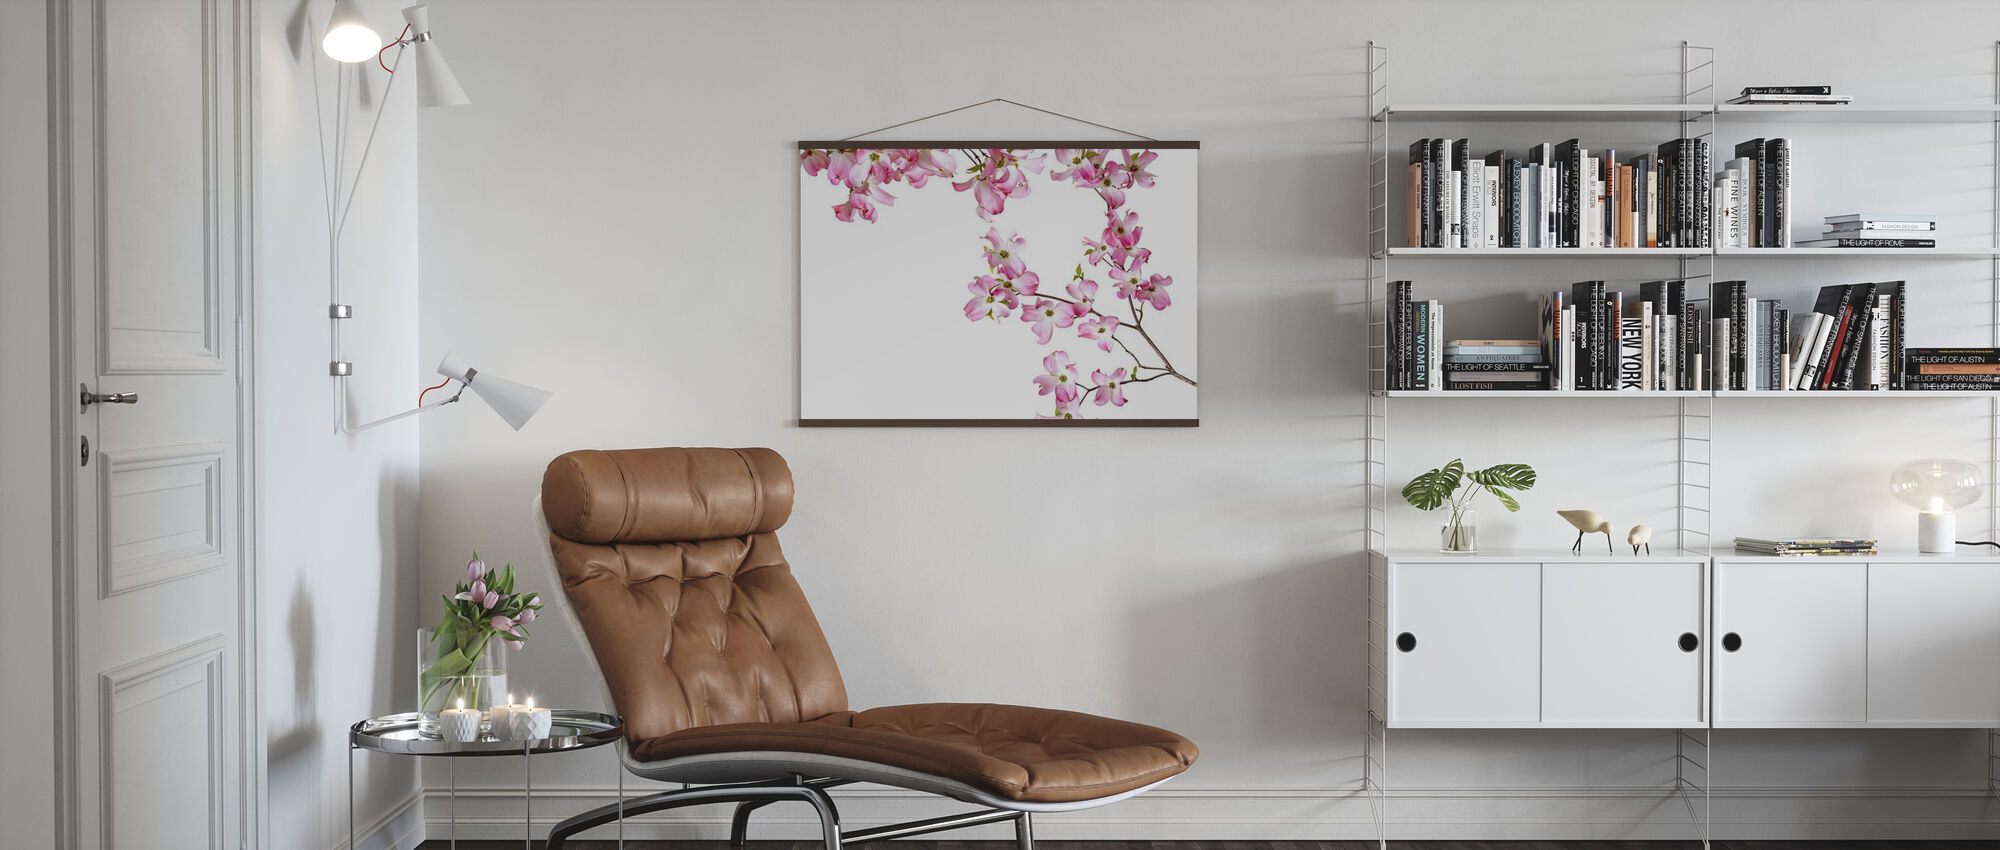 Striped Orchid - Poster - Living Room